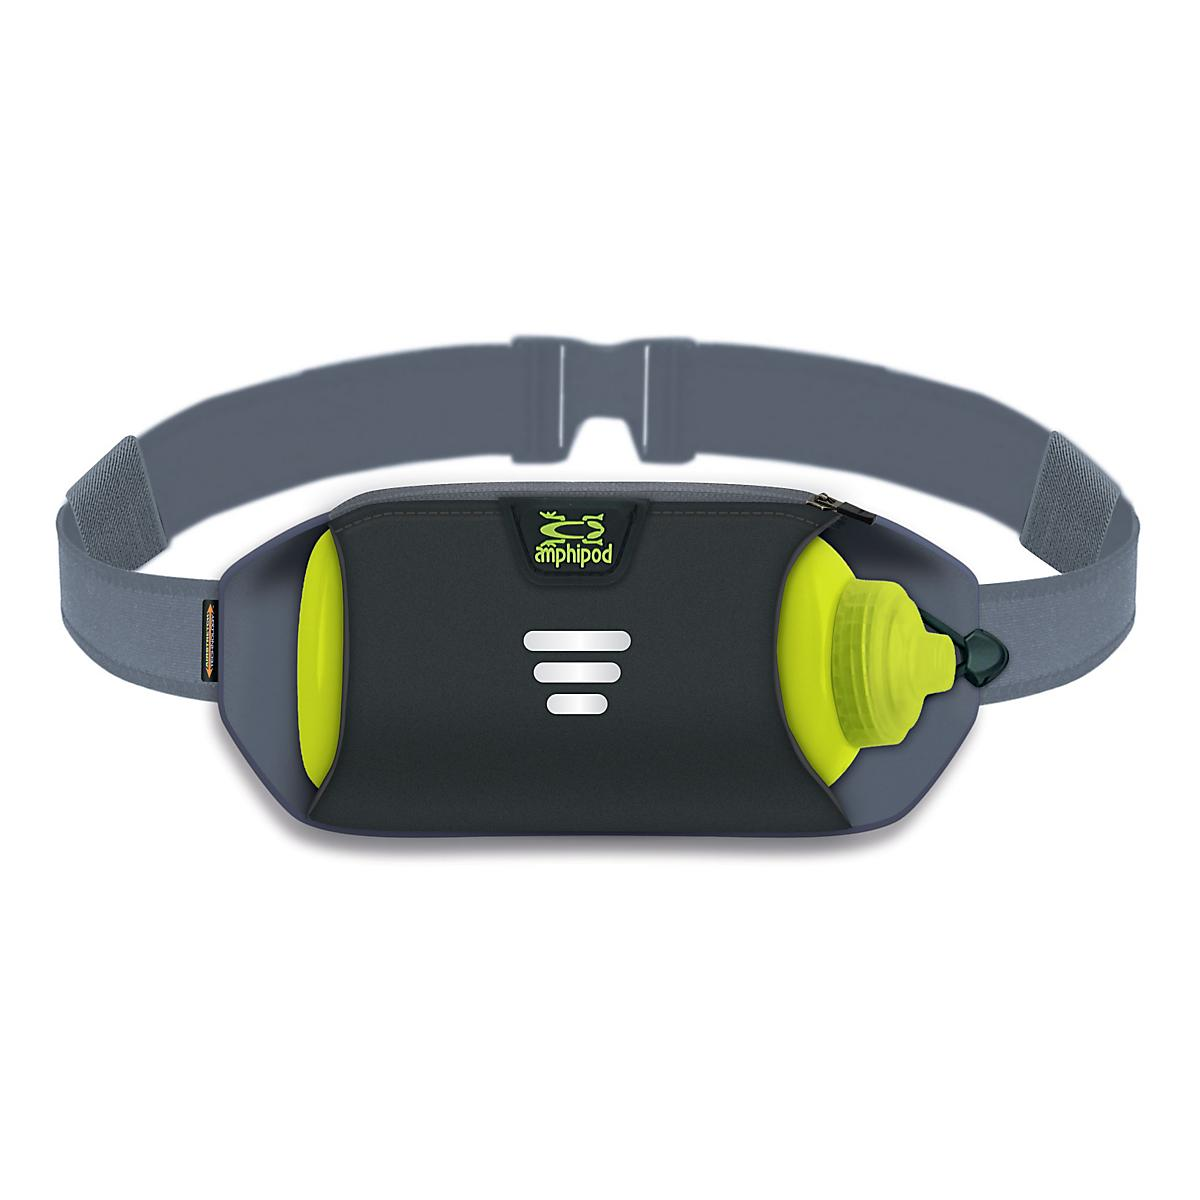 Amphipod�Stealth Runner with AirStretch 16 ounce